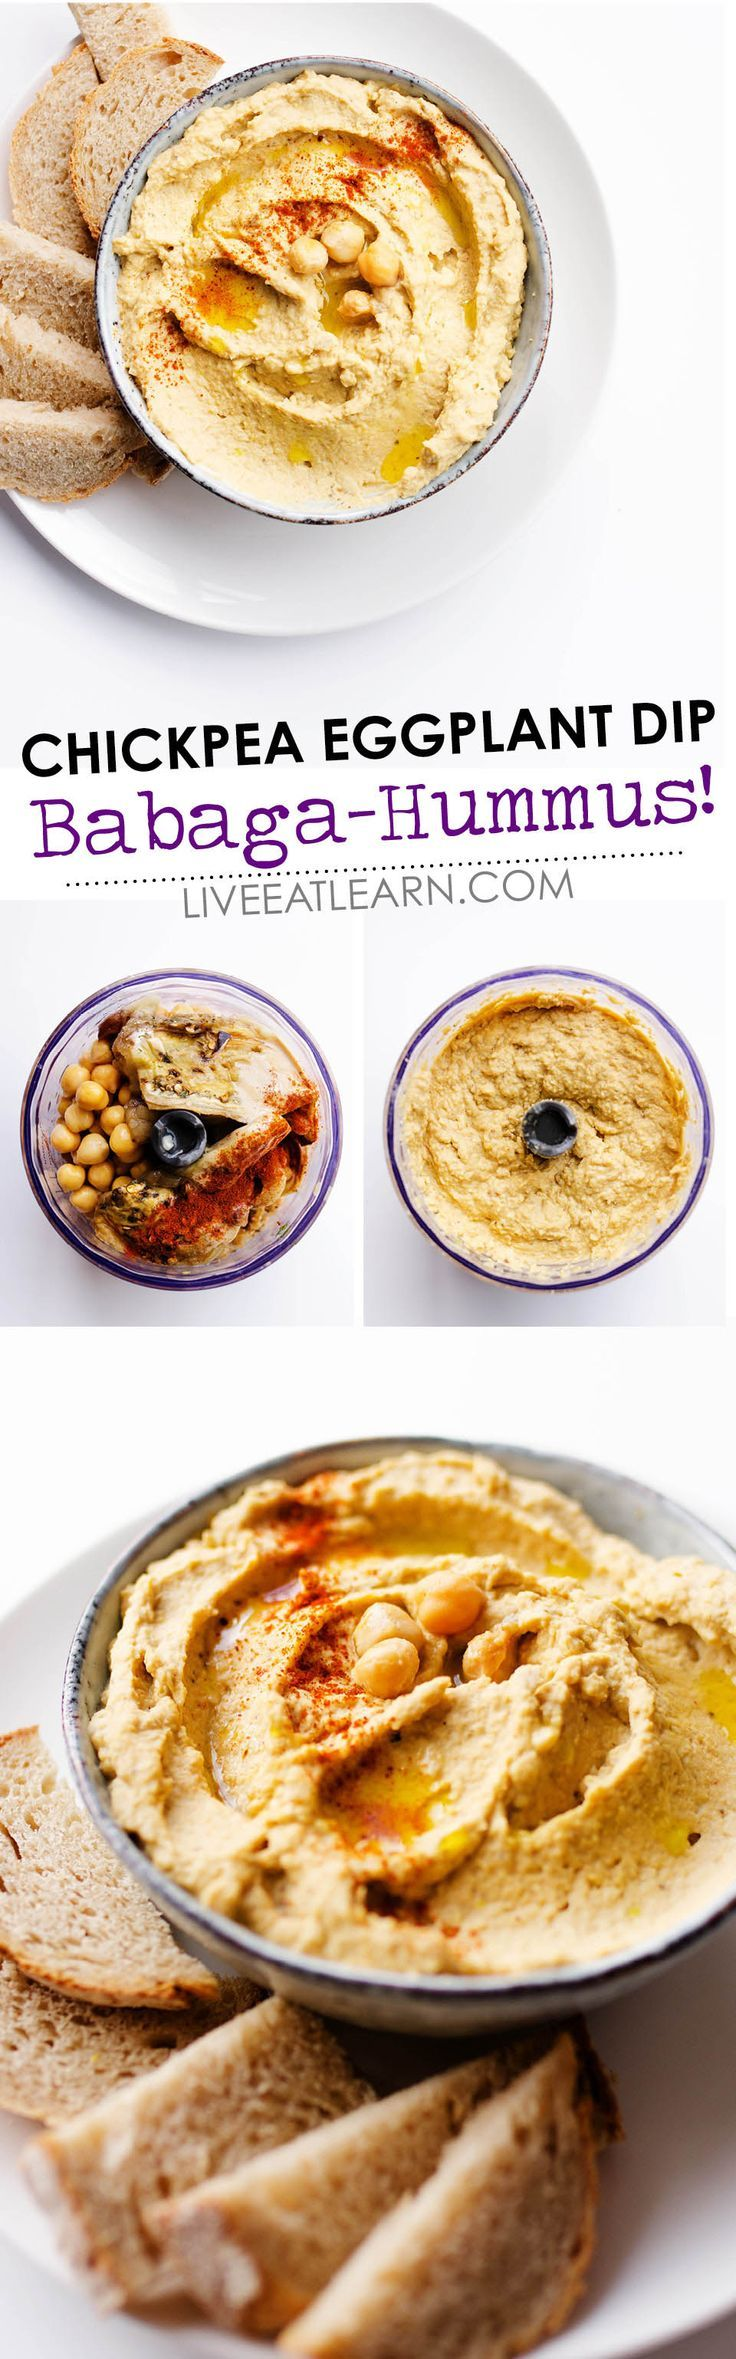 Love hummus but looking to change it up a bit? This healthy Baba Ganoush Hummus recipe is a chickpea/eggplant hybrid that's rich, creamy, and dreamy! The perfect dip for serving as an easy appetizer for potlucks or just as a snack. // Live Eat Learn